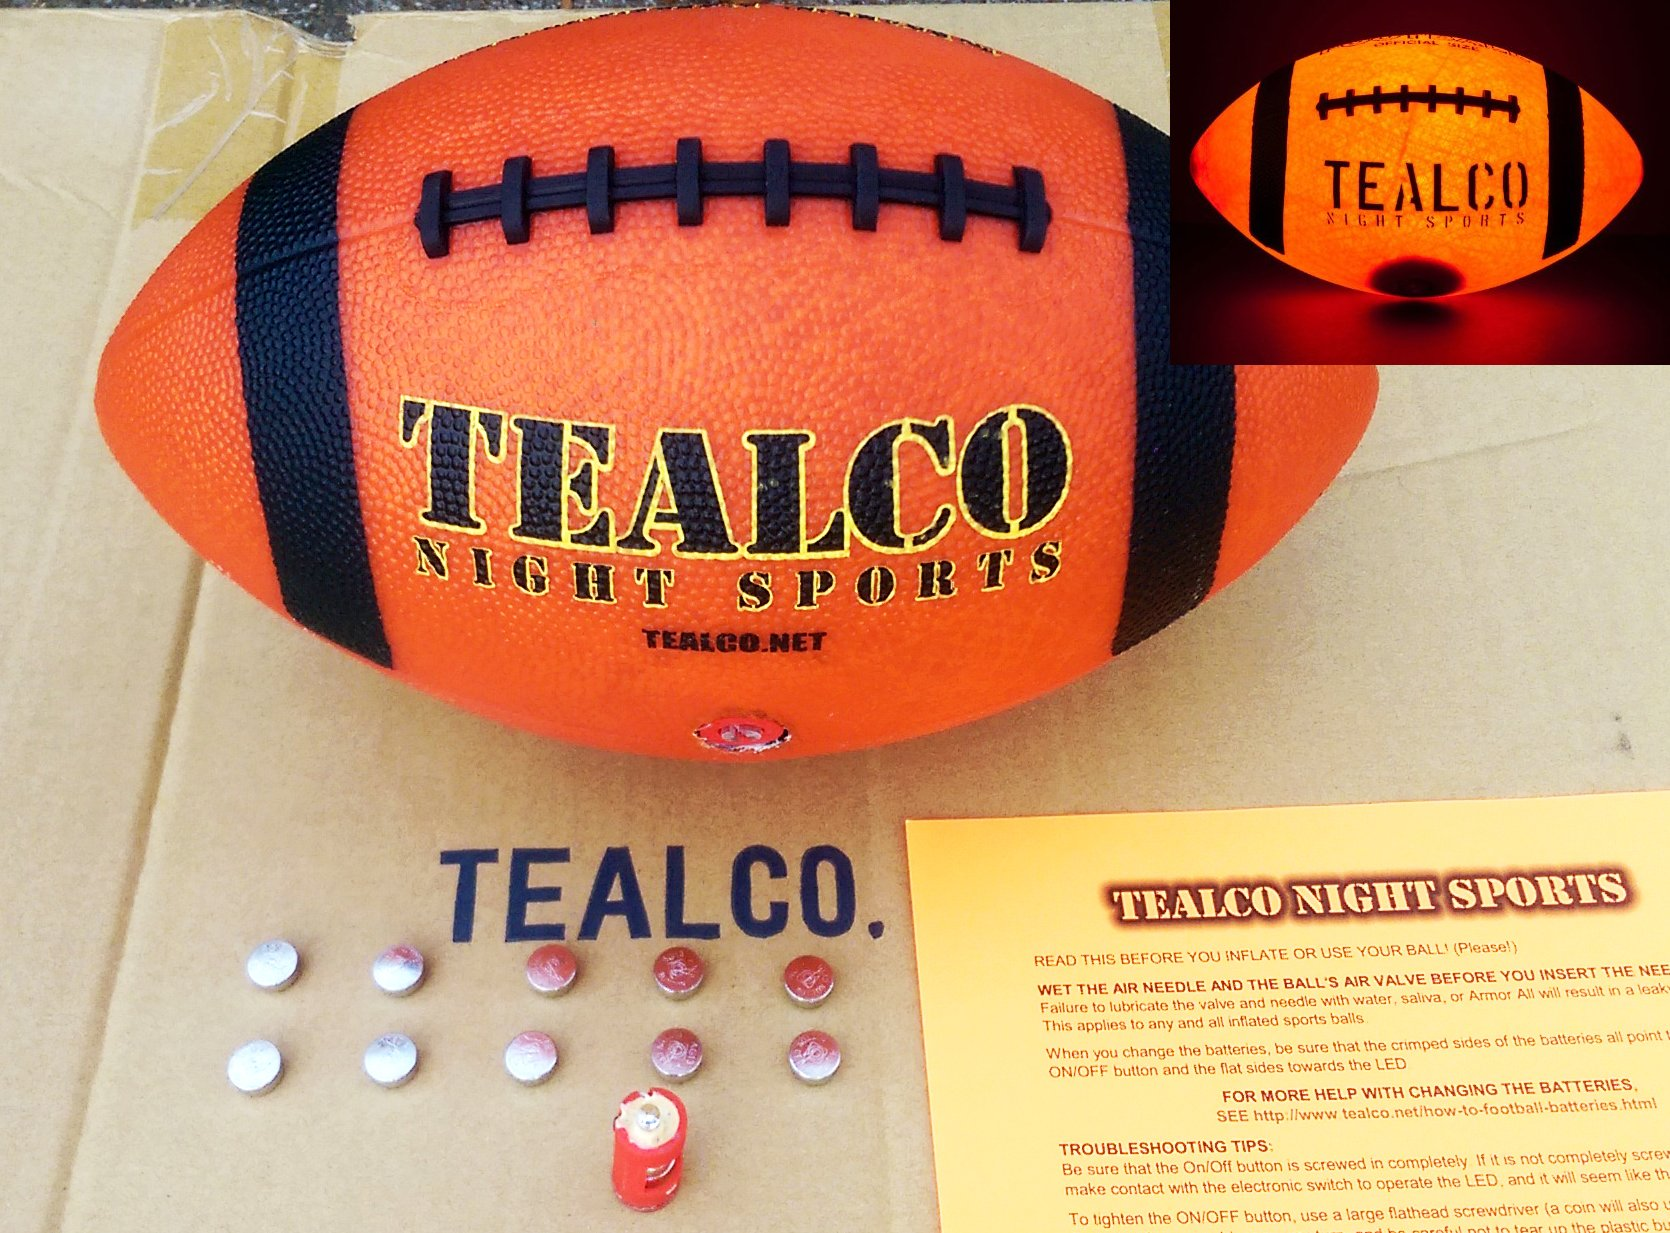 TealCo Full-Size & Weight, Tough Light-Up Football (LED-lighted - Better Than Glow in the Dark) by TealCo